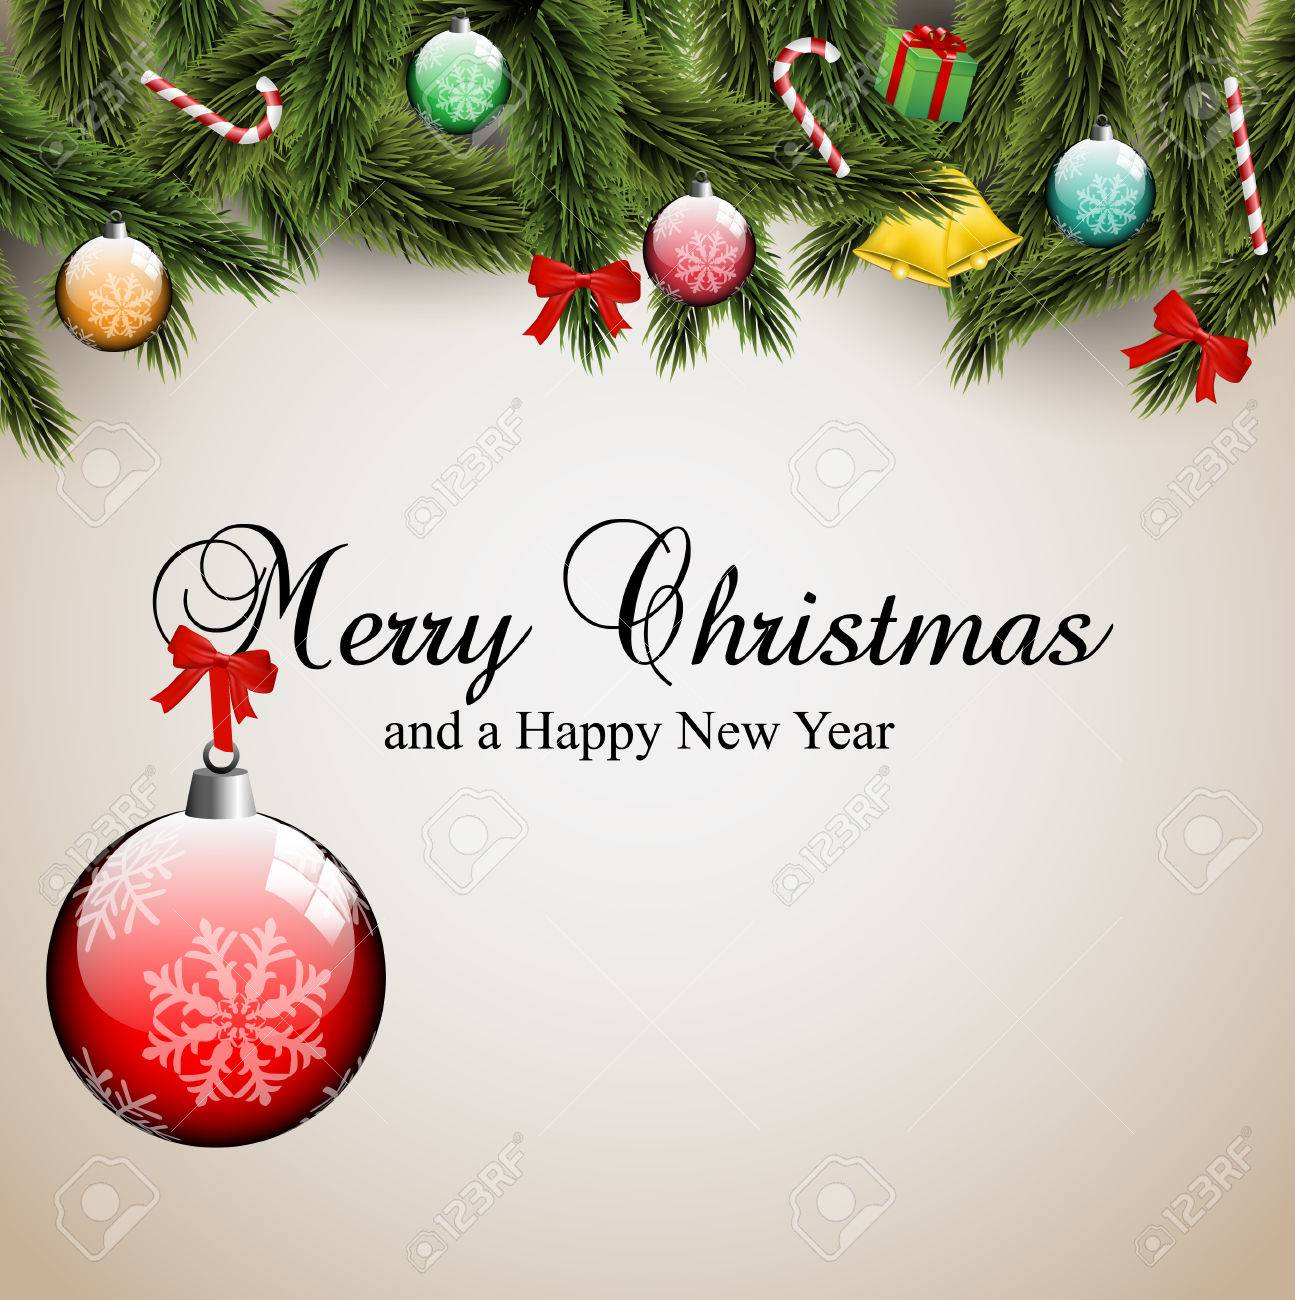 Mery Christmas.Mery Christmas Cad Width Ornamentas And Pine Tree Branches